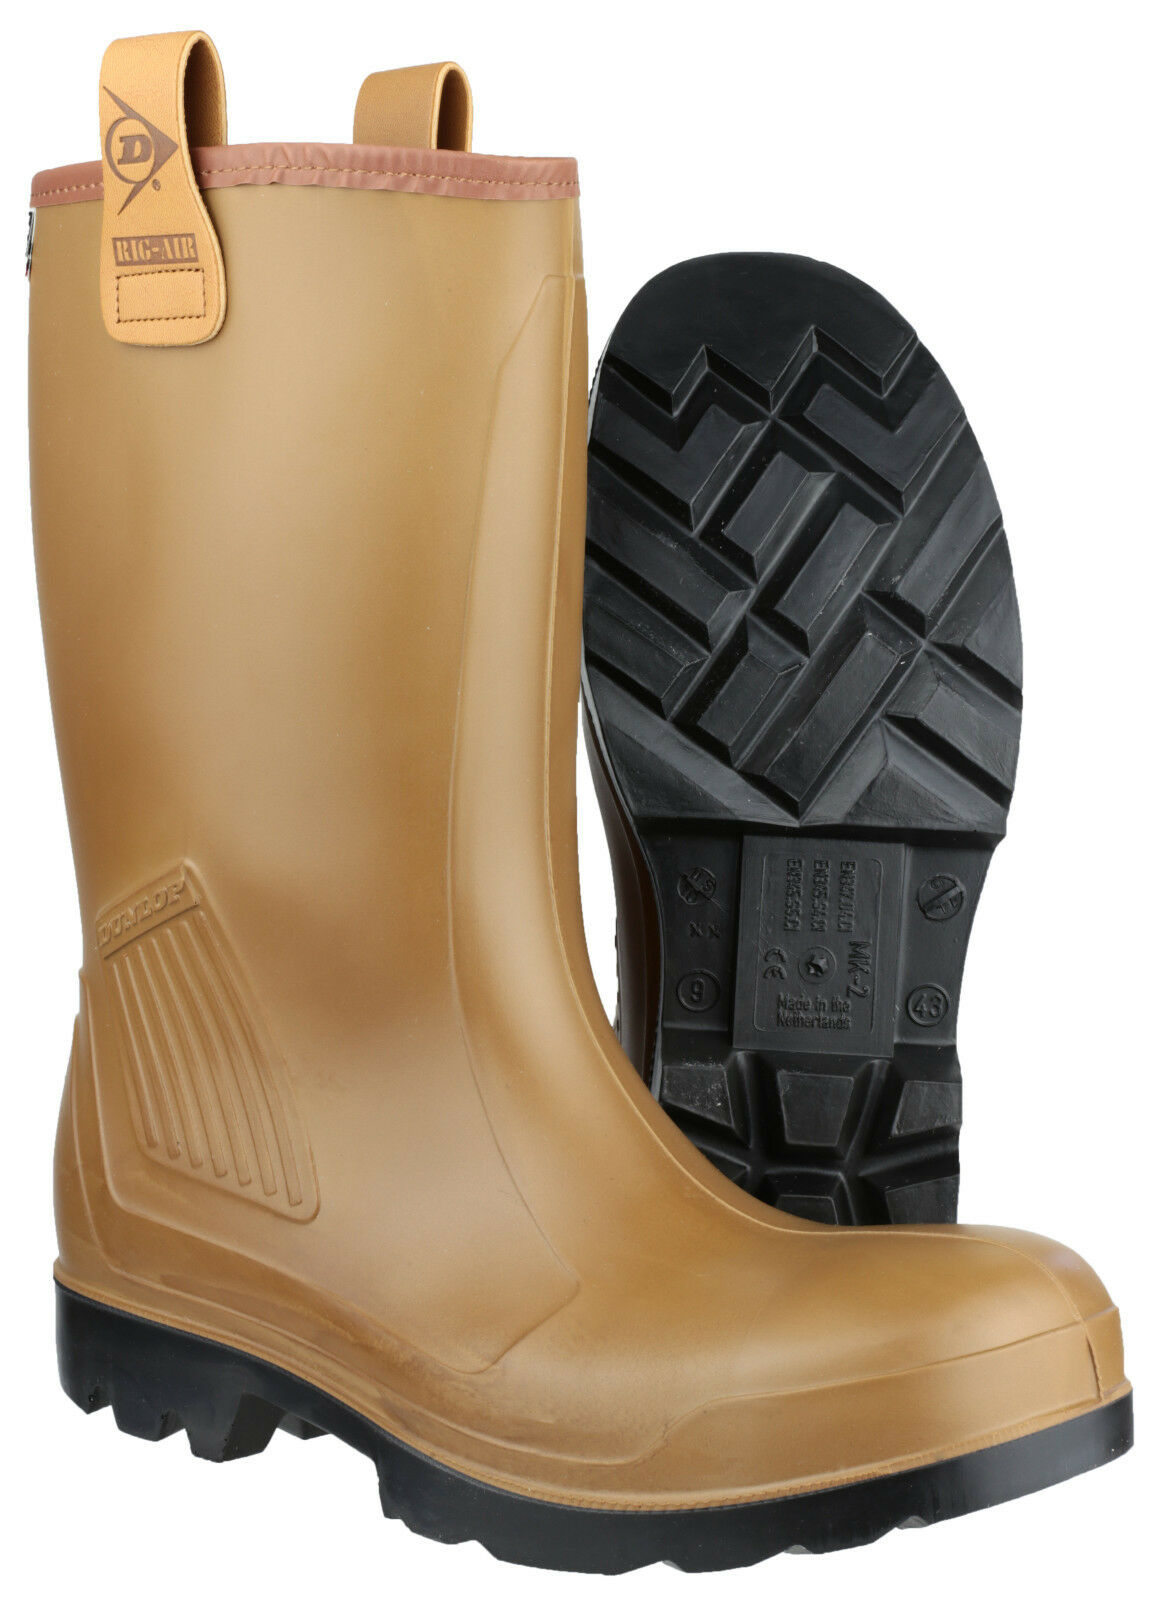 Dunlop Pull Purofort Rig d'aria piena di sicurezza da uomo Pull Dunlop On Wellingtons uk6-13 industriale 0fd703